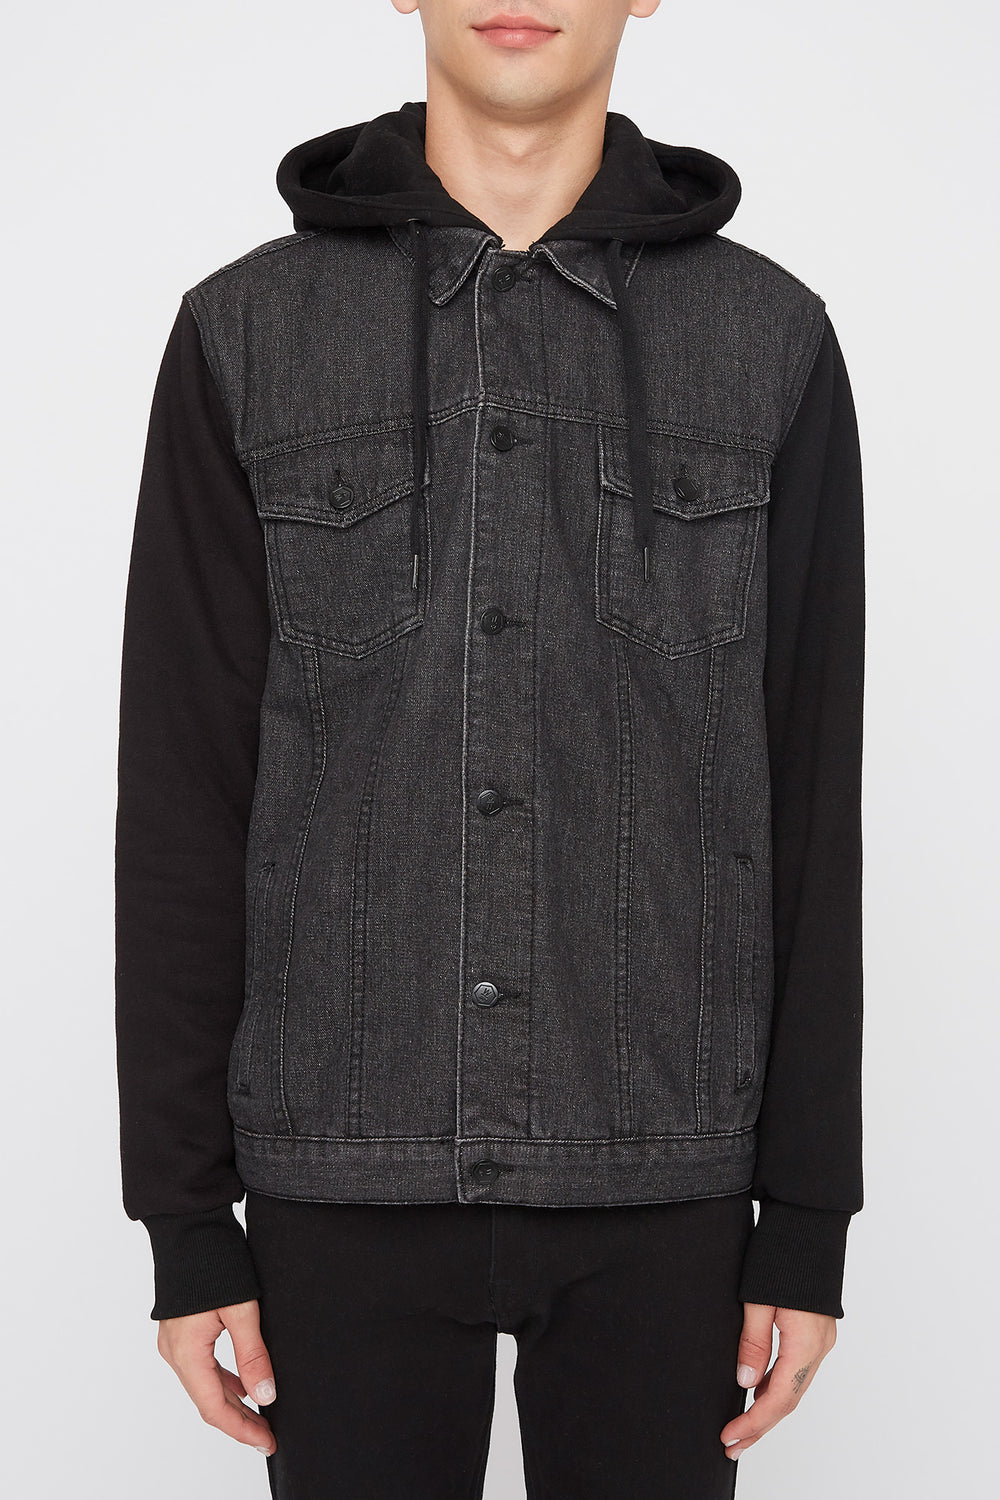 Manteau En Denim West49 Homme Noir